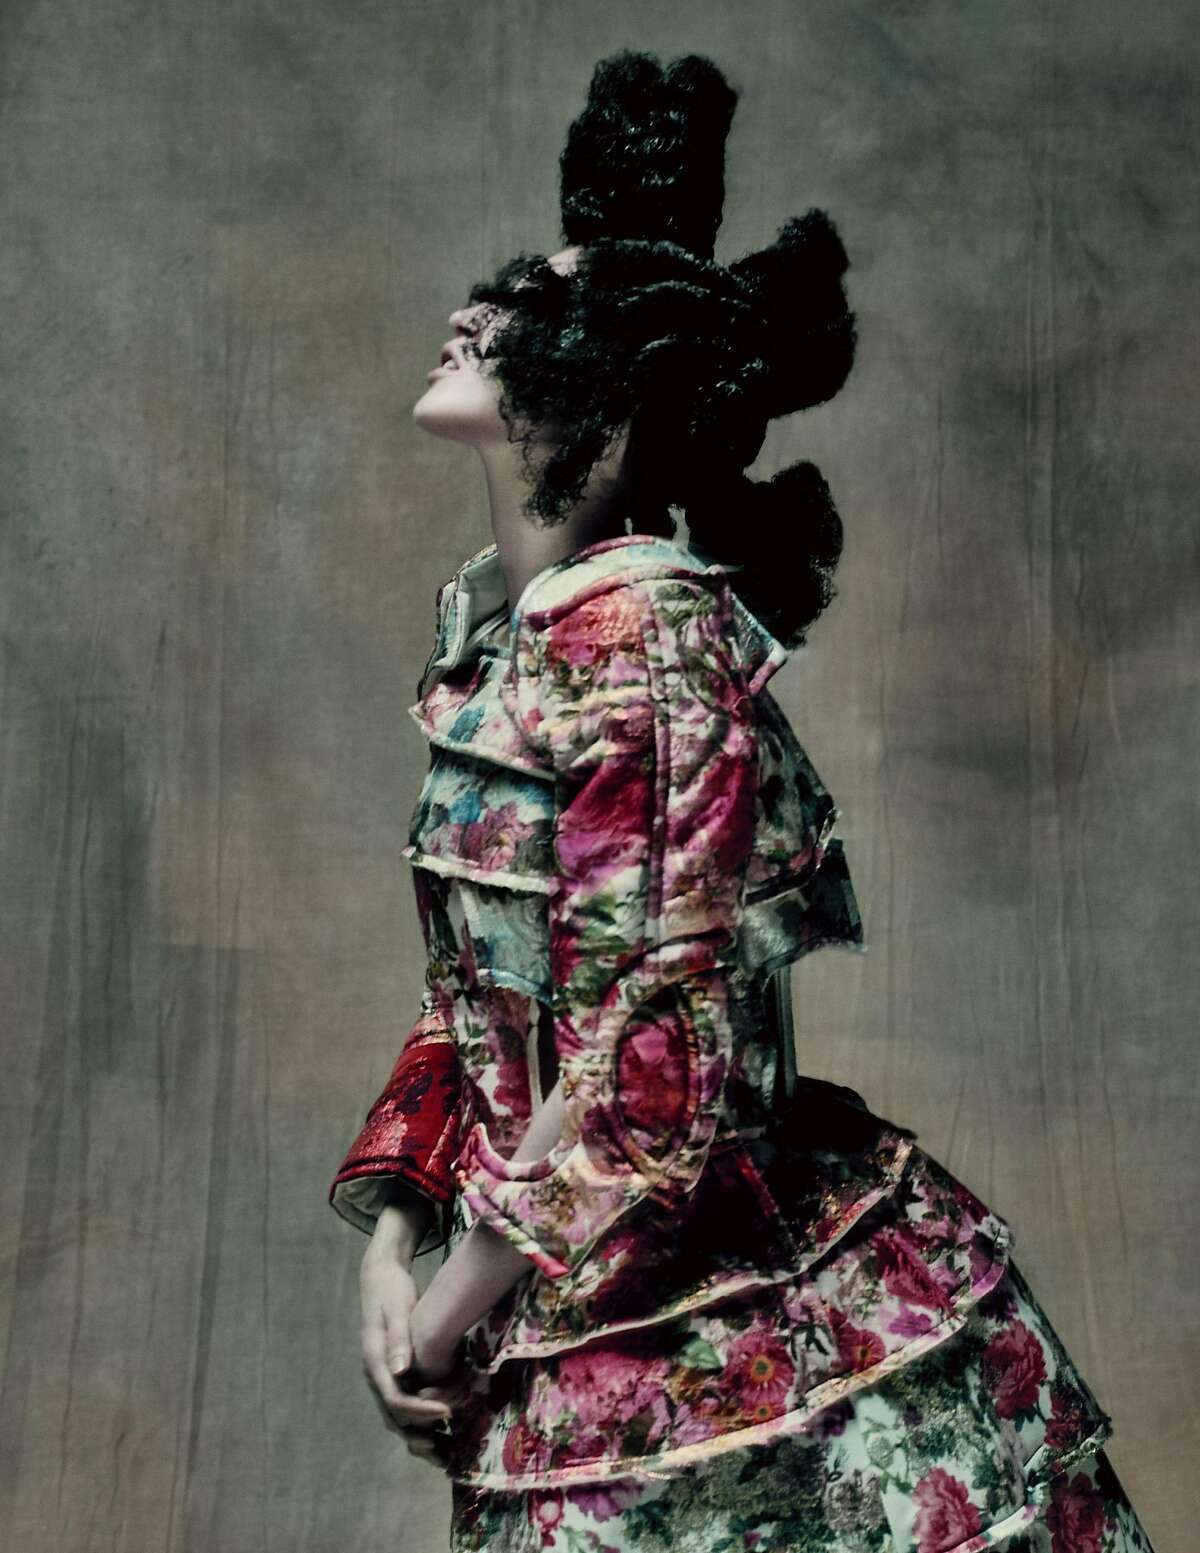 Images from the new Metropolitan Museum of Art Costume Institute exhibition